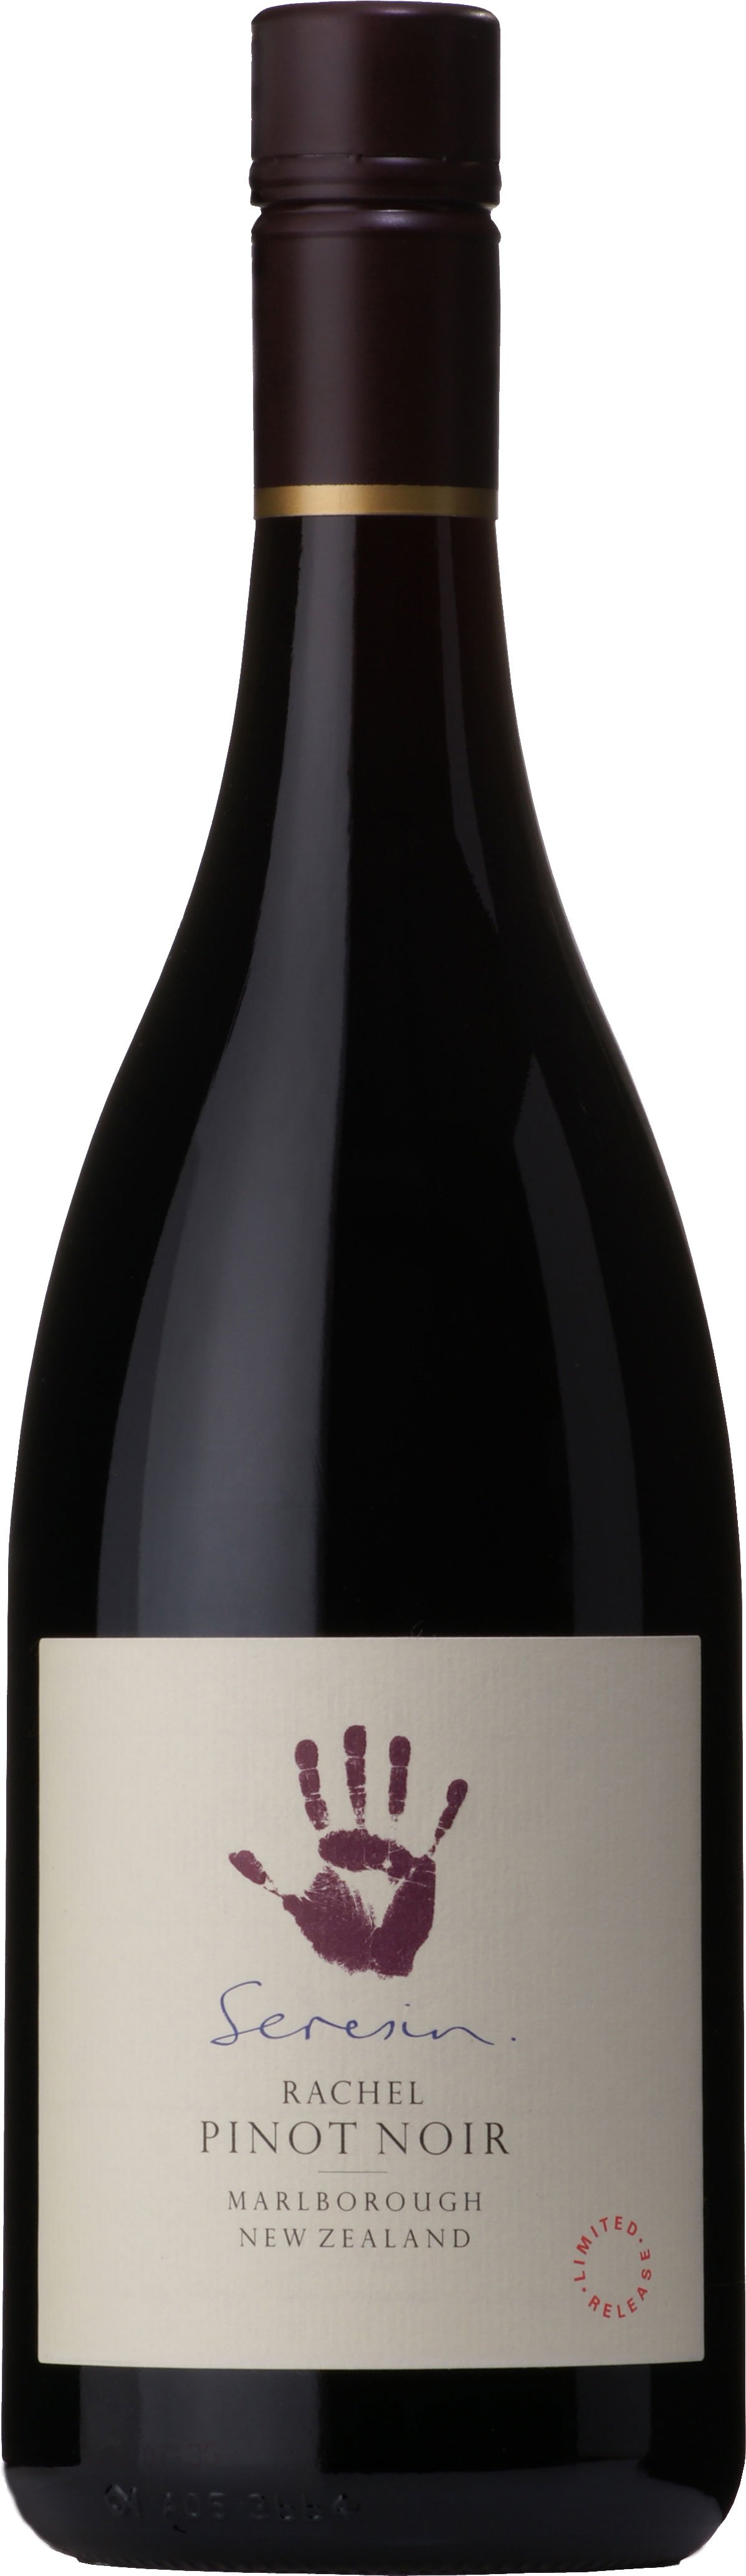 Seresin - Rachel Pinot Noir 2014 75cl Bottle